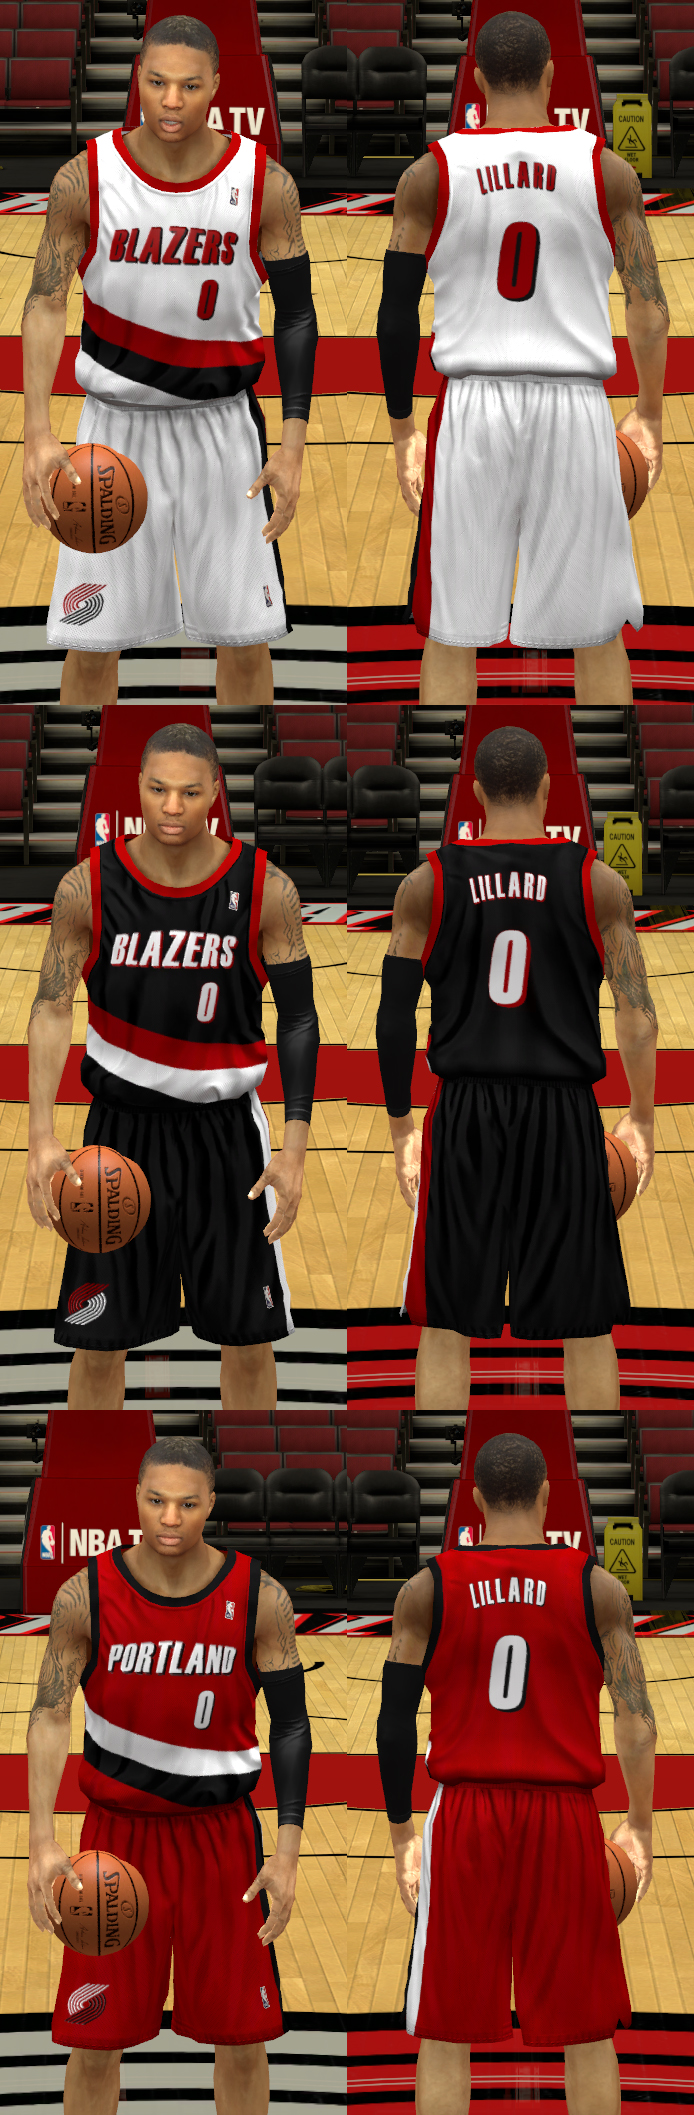 1990s Portland Trail Blazers Uniforms